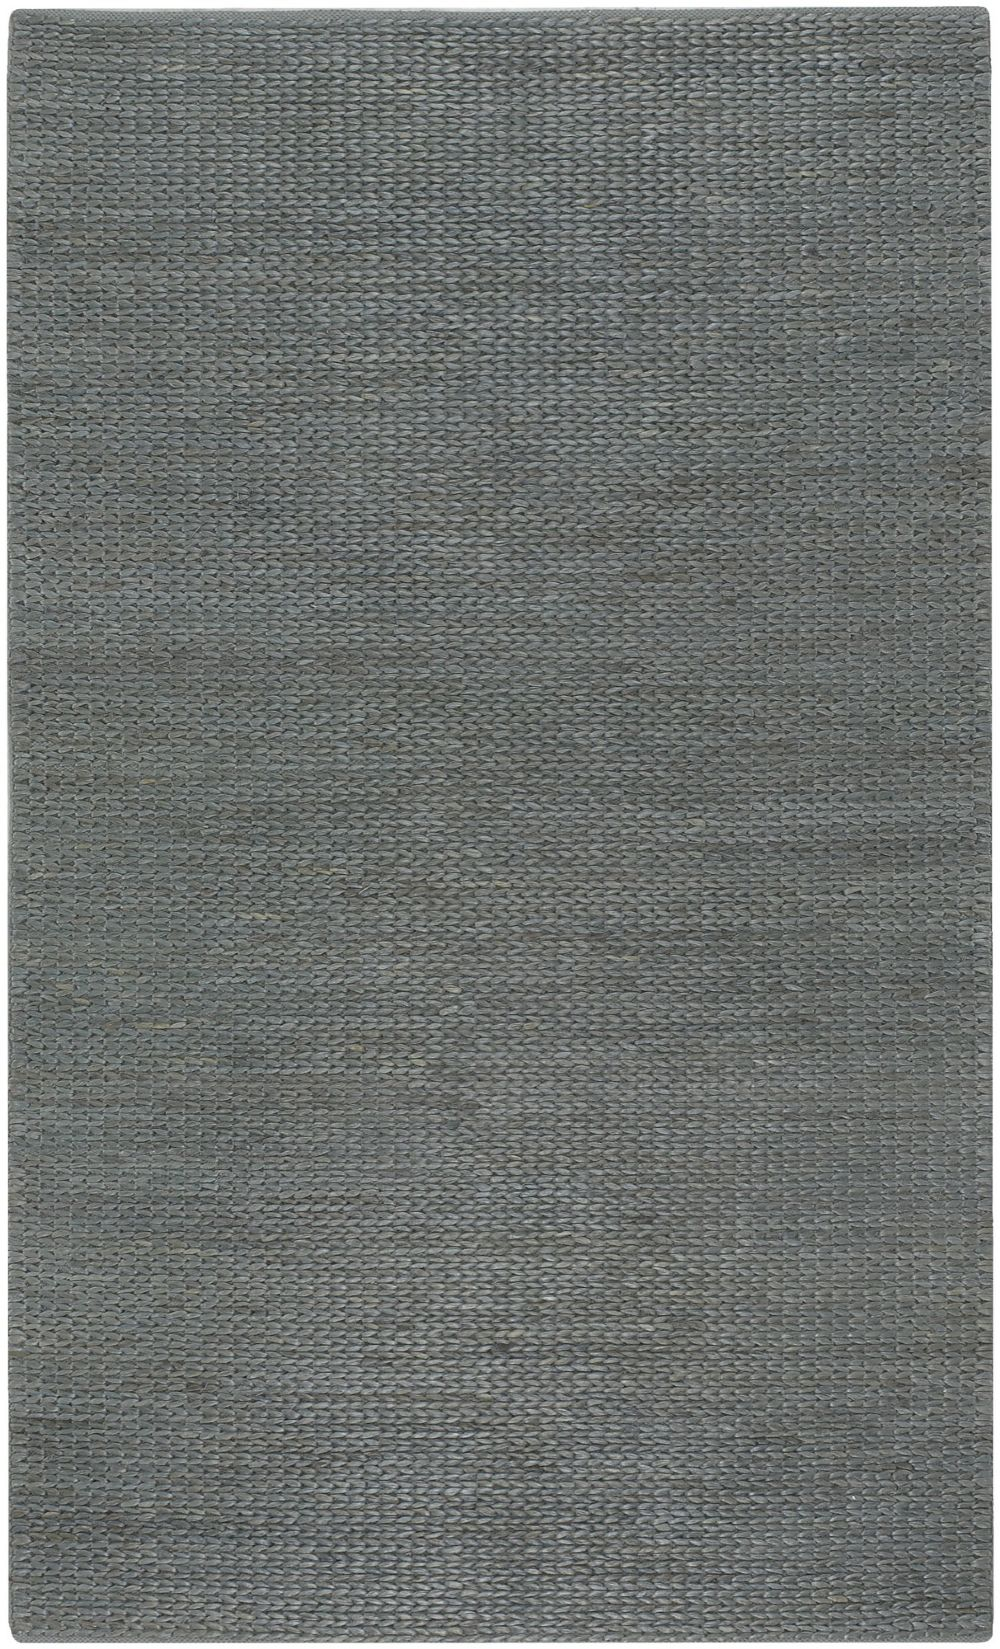 surya tropics natural fiber area rug collection